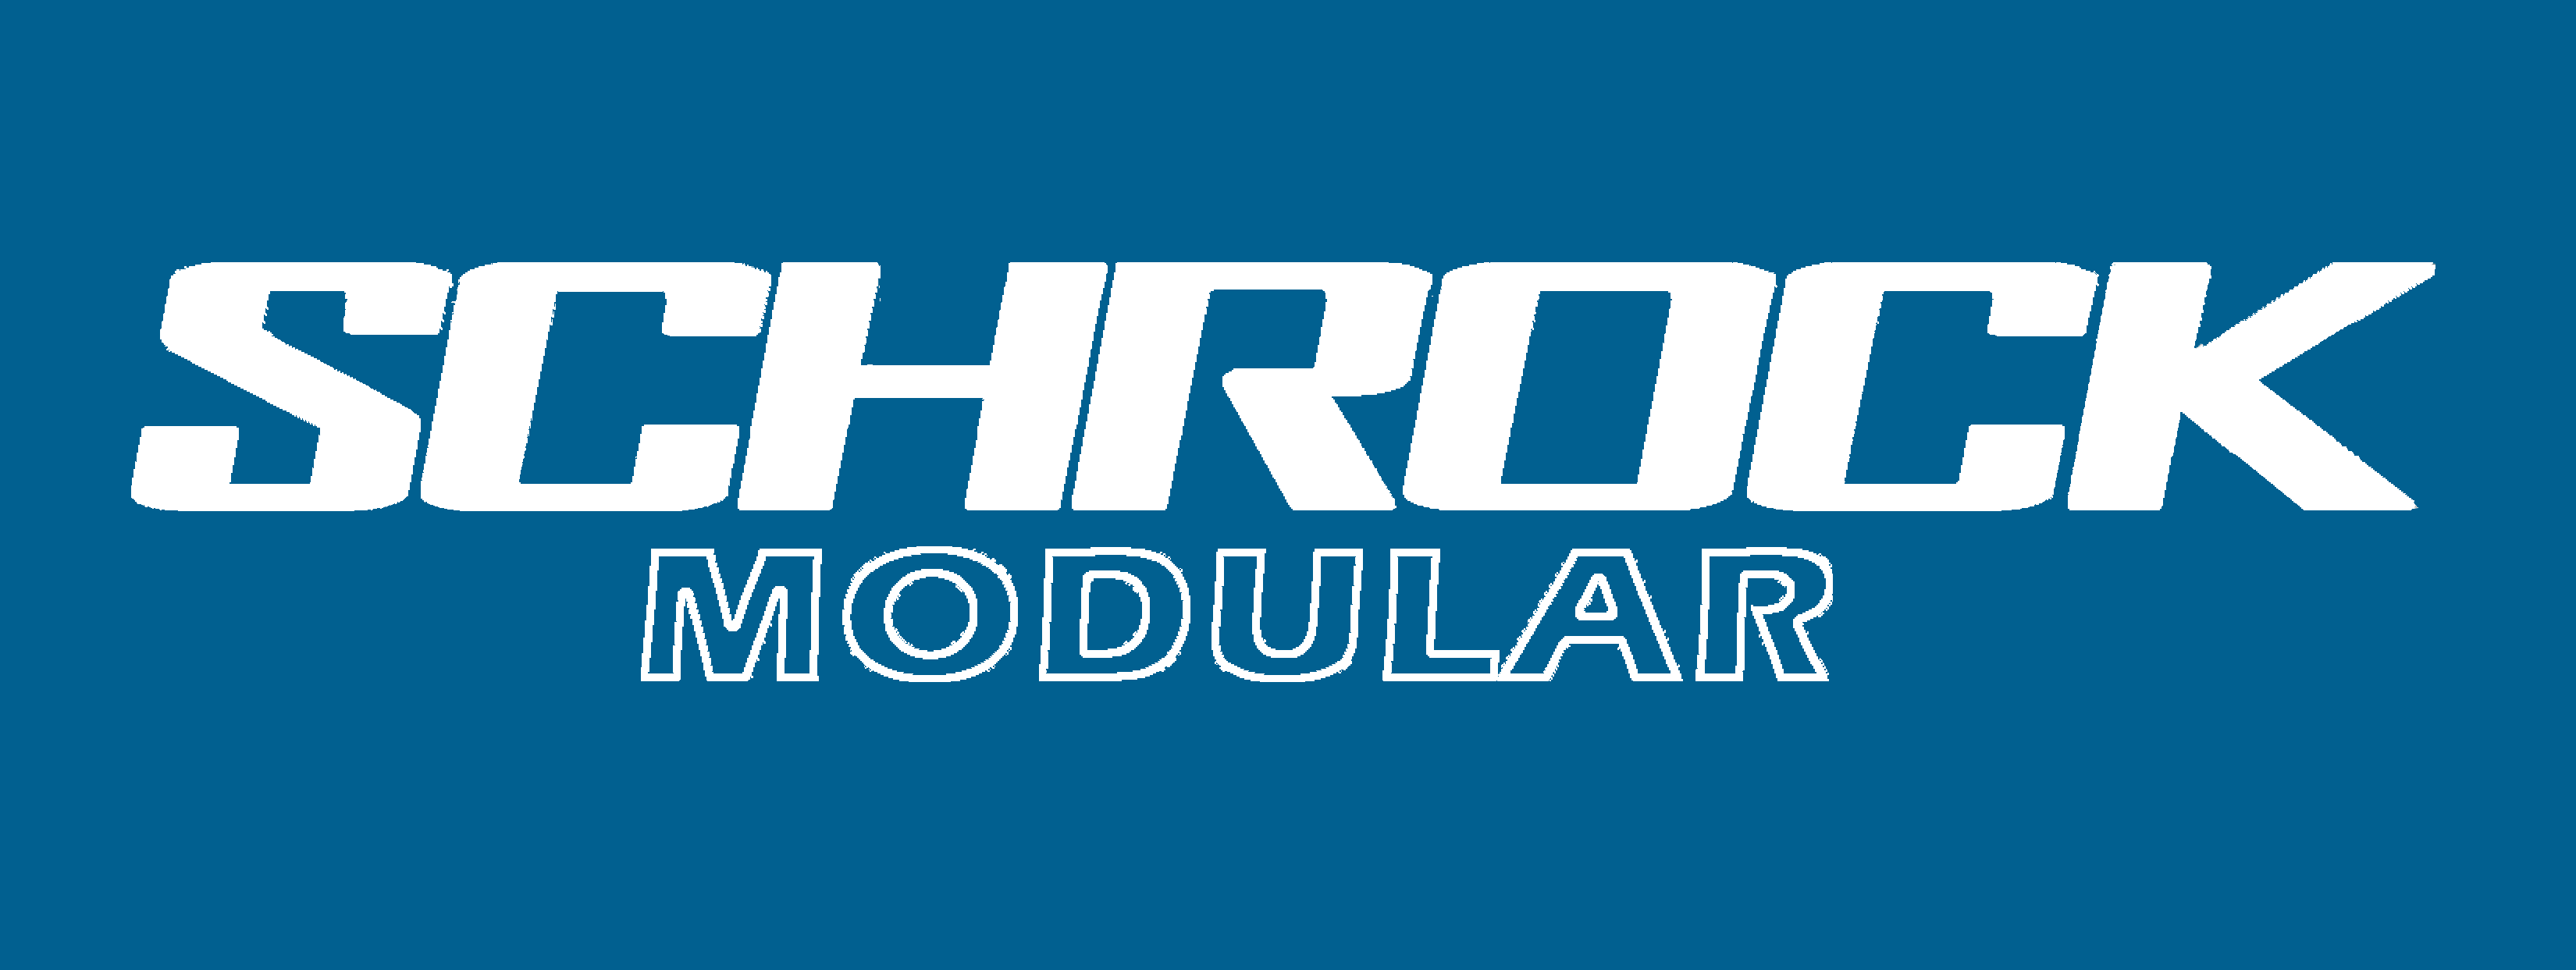 Modular Computers by Schrock Innovations